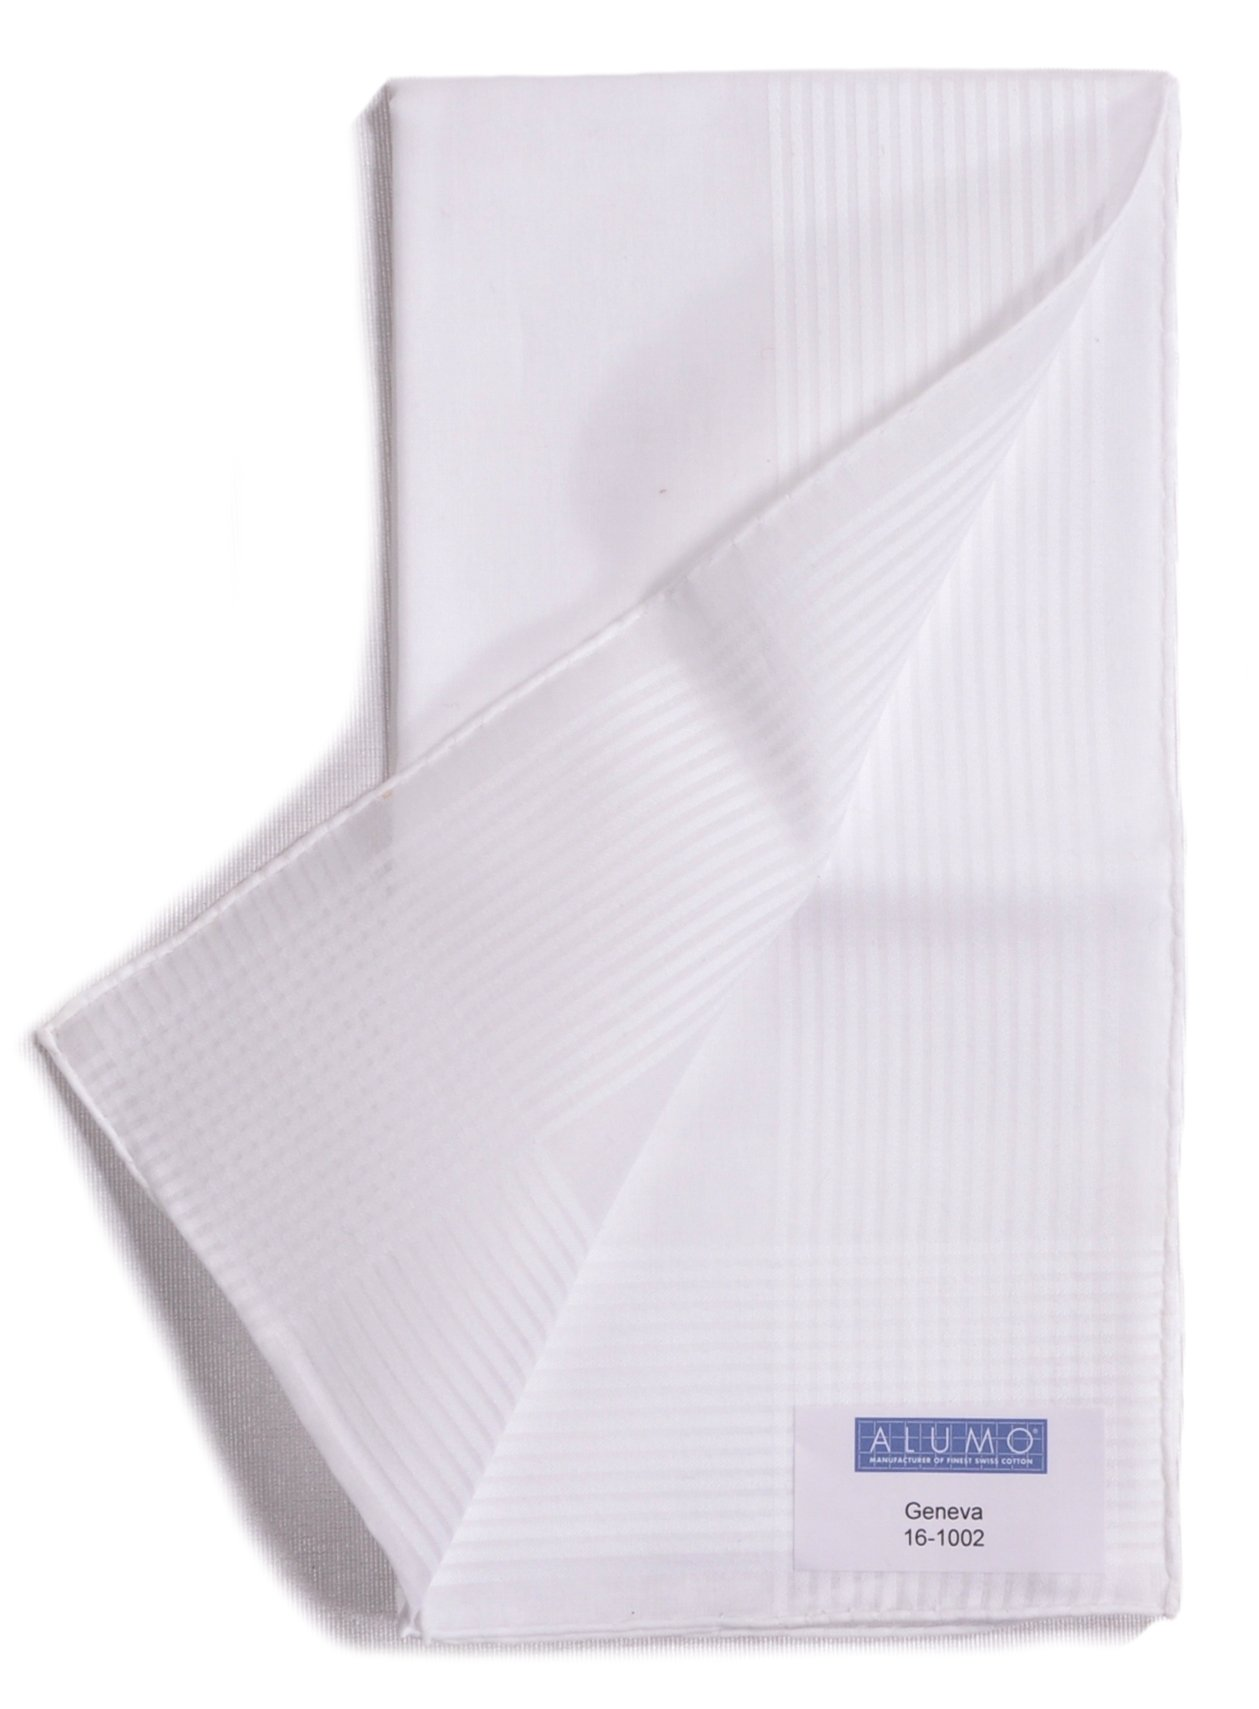 Four ''Geneva'' Hand Rolled Swiss Cotton Handkerchiefs by Alumo